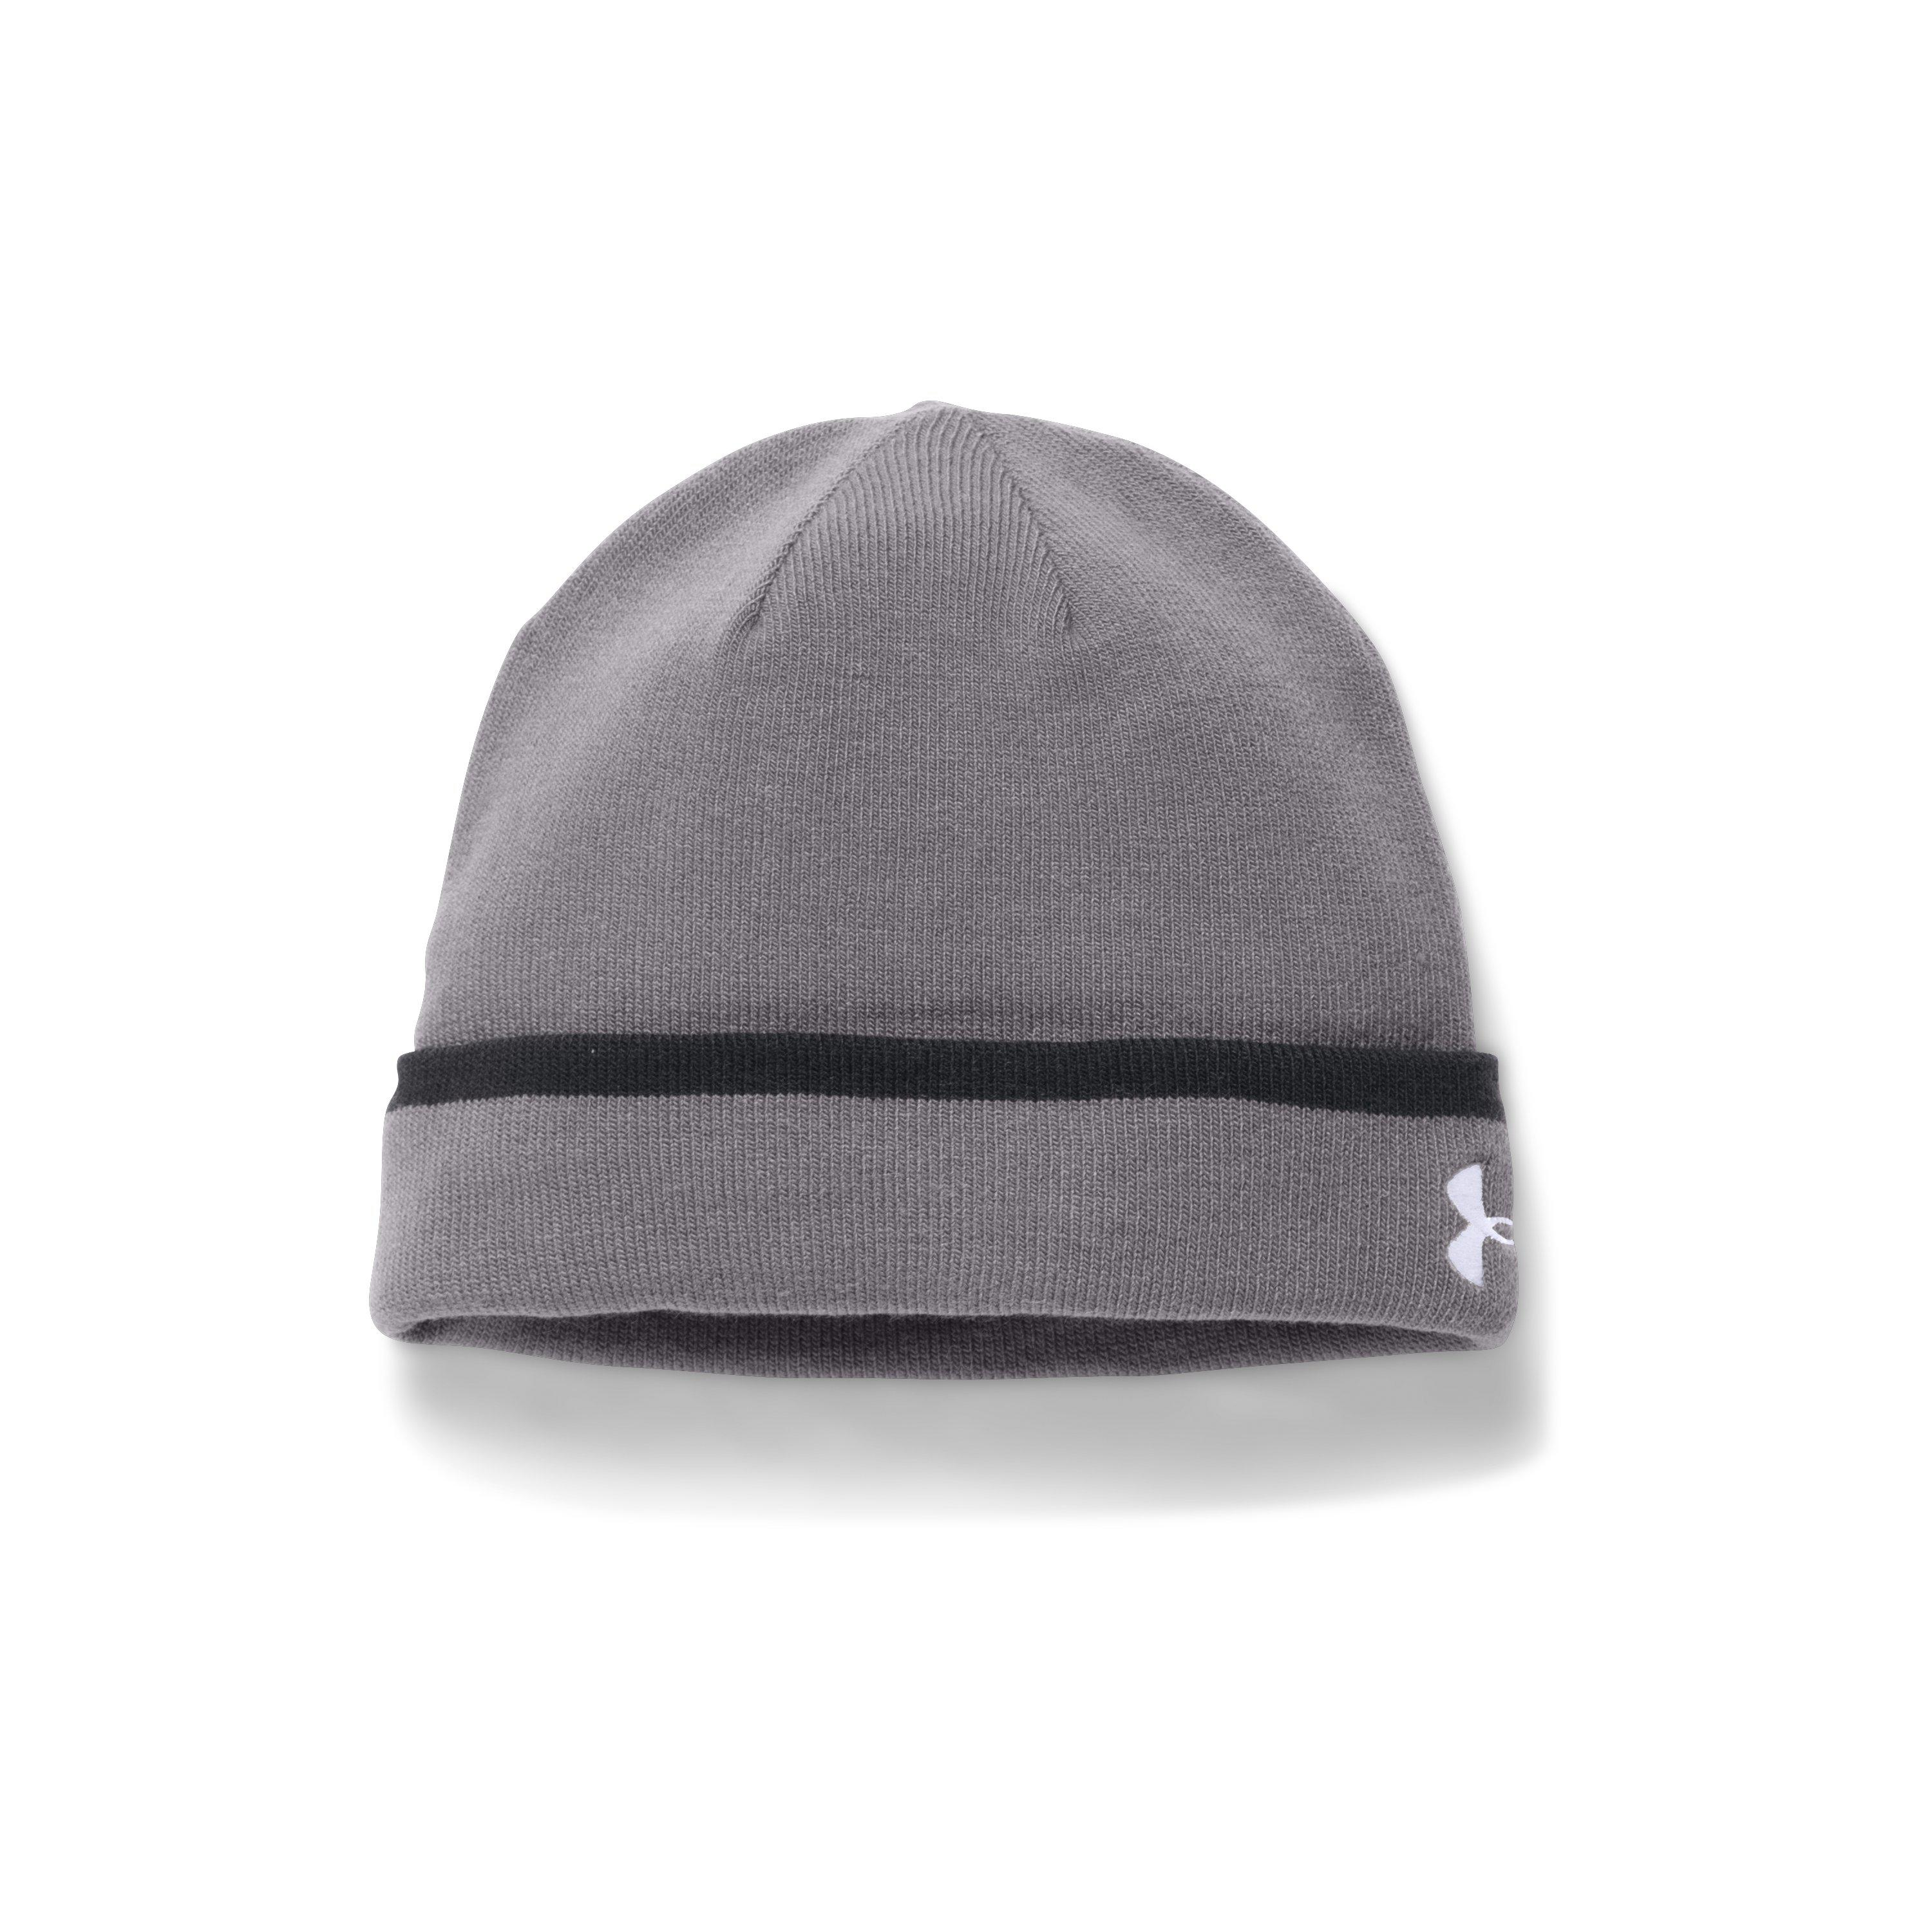 92bbf2112f0 Lyst - Under Armour Men s Ua Cuff Beanie in Gray for Men